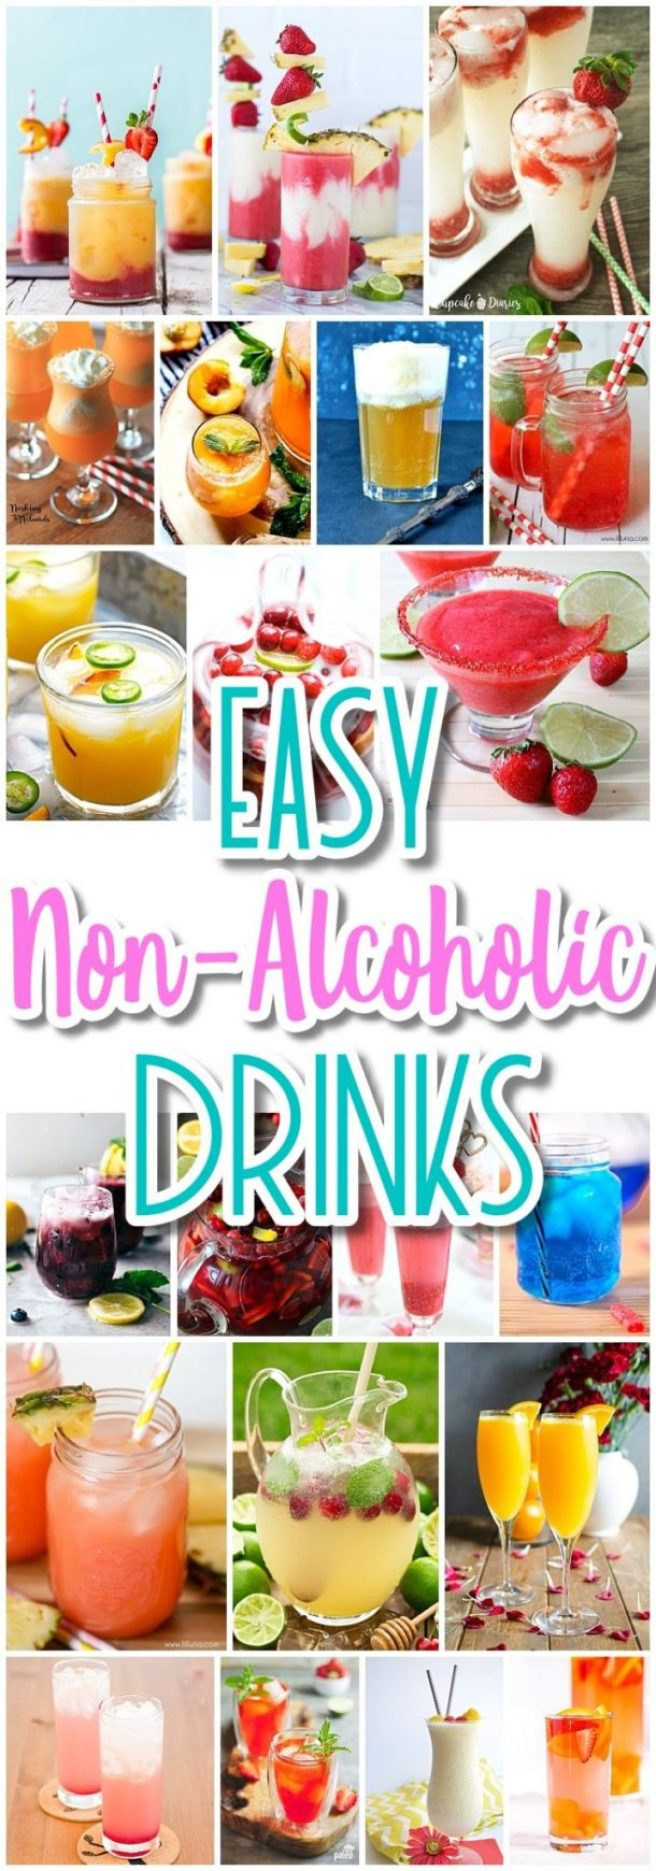 The BEST Easy Non-Alcoholic Drinks Recipes - Creative Mocktails and Family Friendly, Alcohol-Free, Big Batch Party Beverages for a Crowd! - Dreaming in DIY - The BEST Easy DIY Mother's Day Gifts and Treats Ideas - Holiday Craft Activity Projects, Free Printables and Favorite Brunch Desserts Recipes for Moms and Grandmas